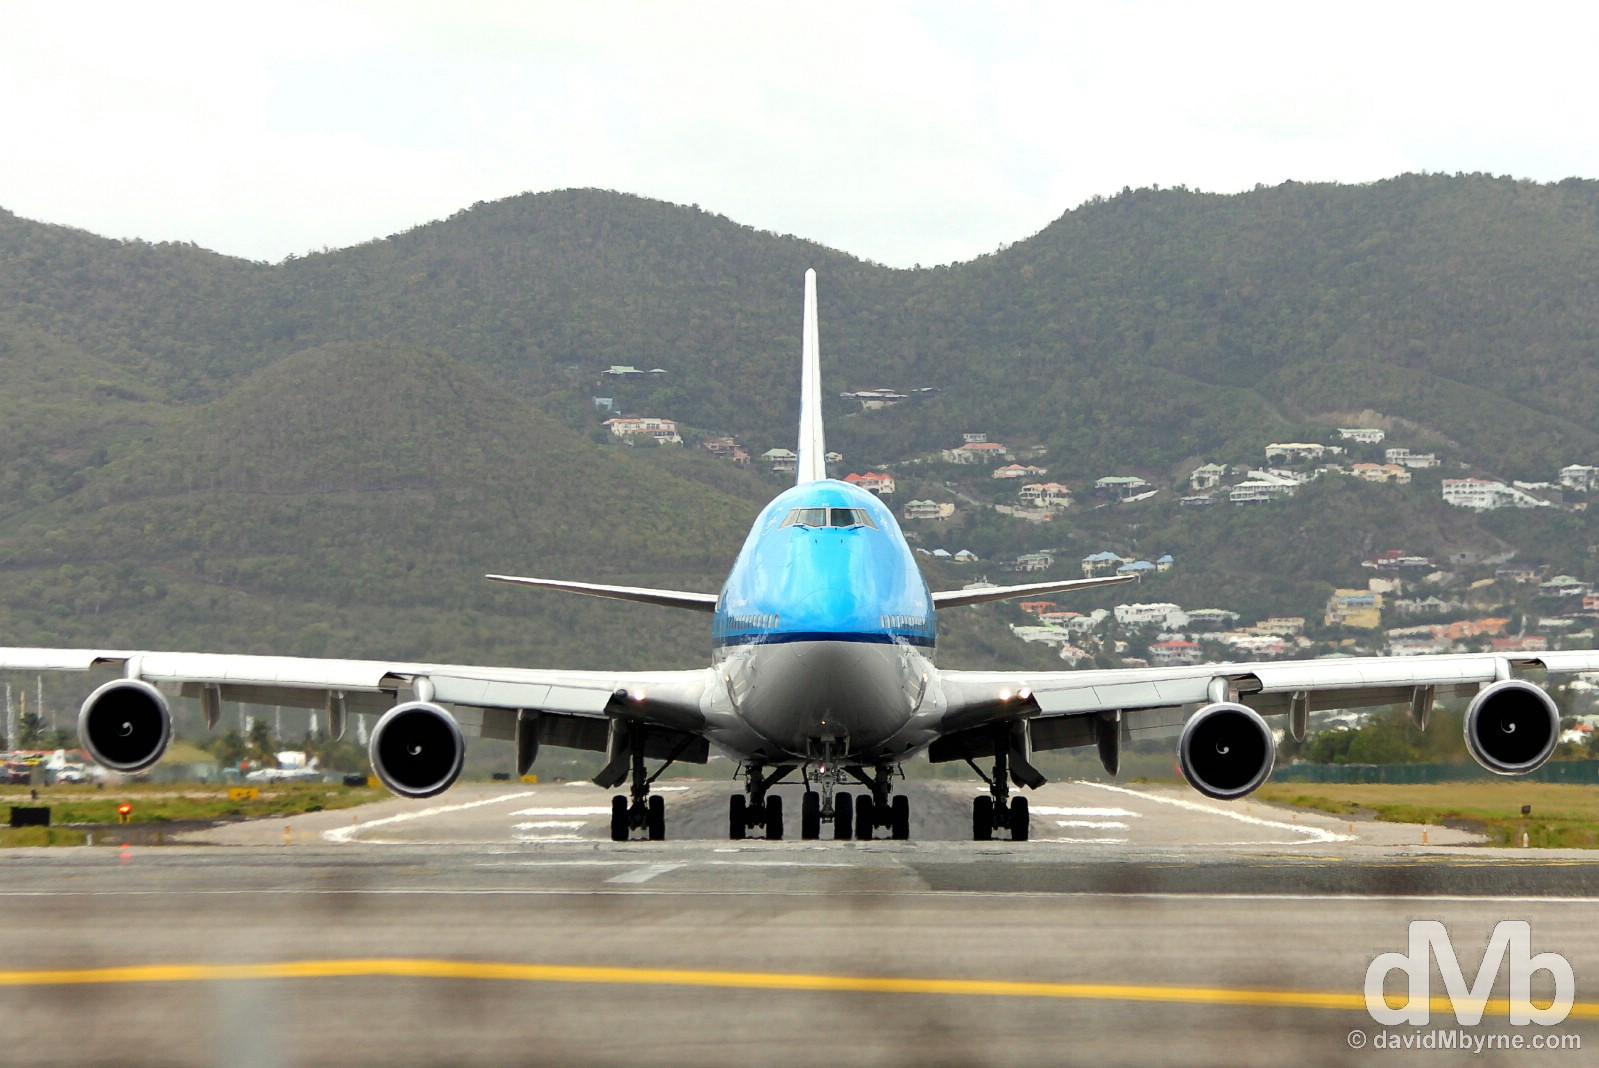 Taxiing for take-off at Juliana Airport, Sint Maarten, Lesser Antilles. June 9, 2015.